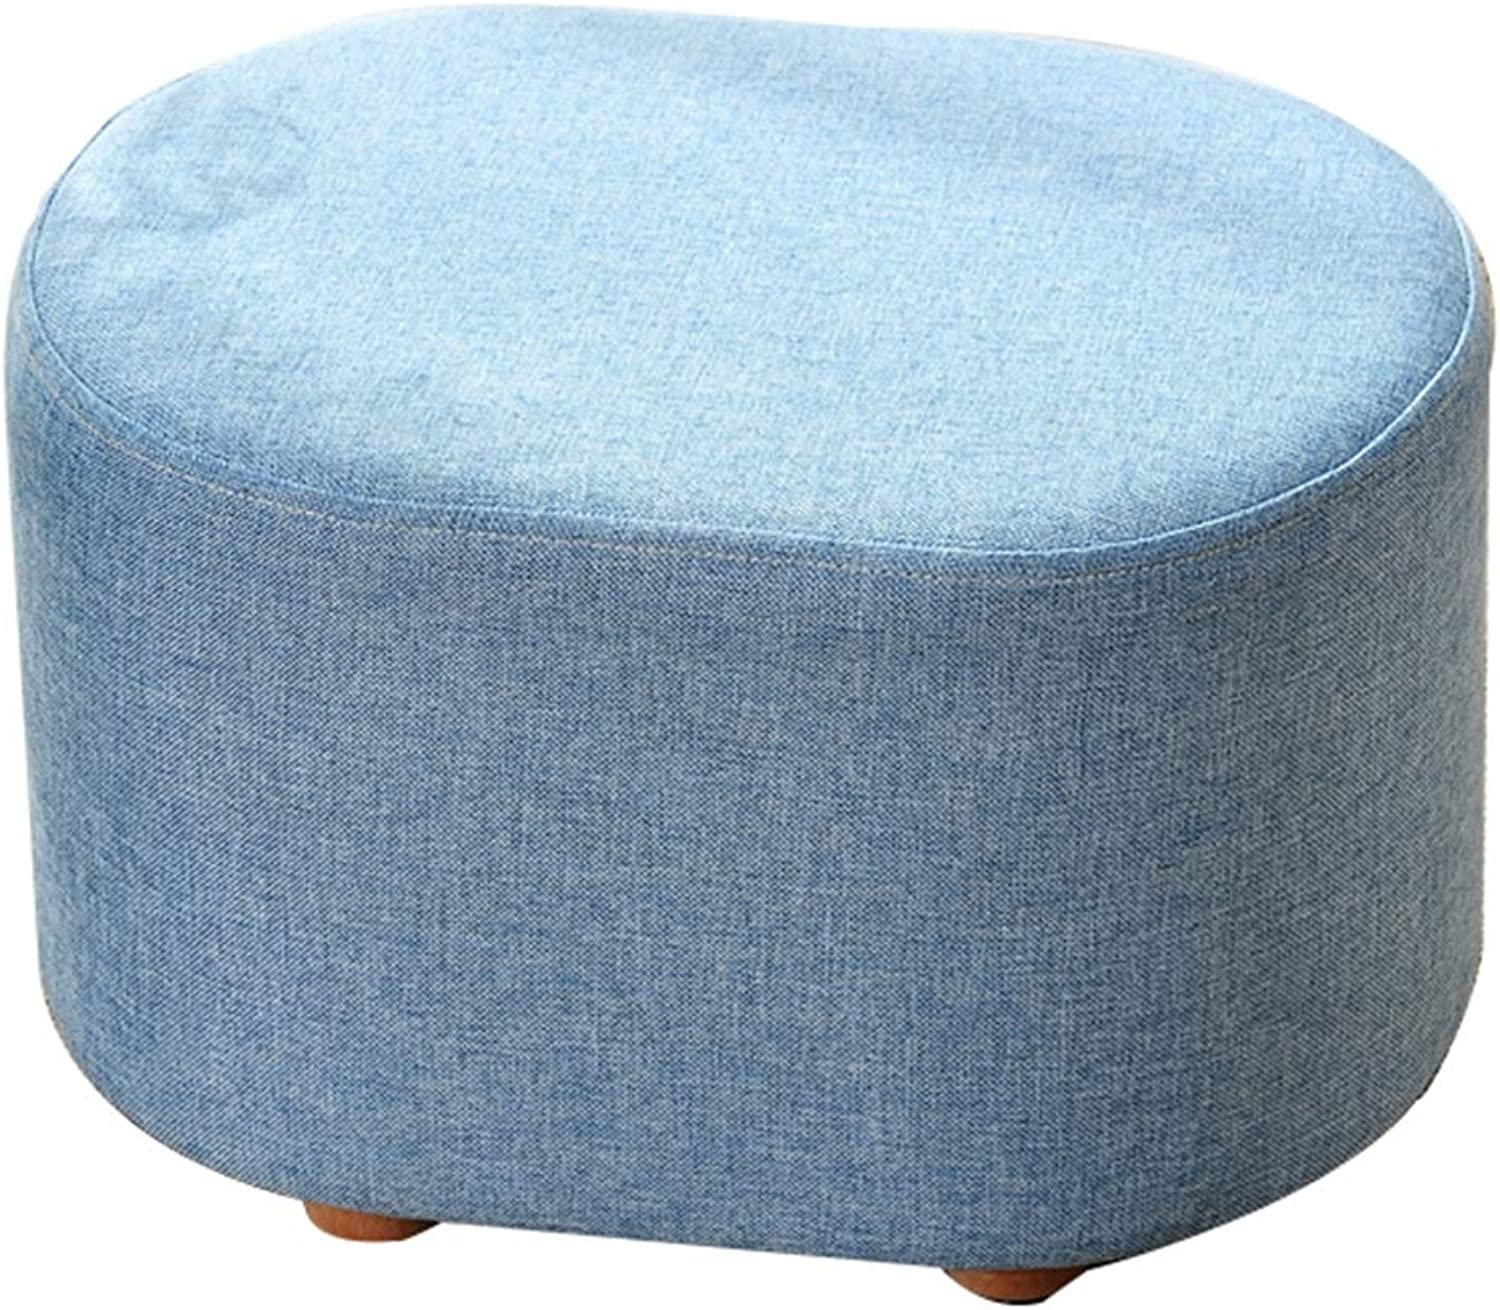 WEIYV-Barstools,bar chair Low Stool Sitting Stool Change shoes Bench Sofa Stool Footstool Cloth Solid Wood Simple Modern Living Room Creative Short Man Small Stool ( color   bluee , Size   403027cm )